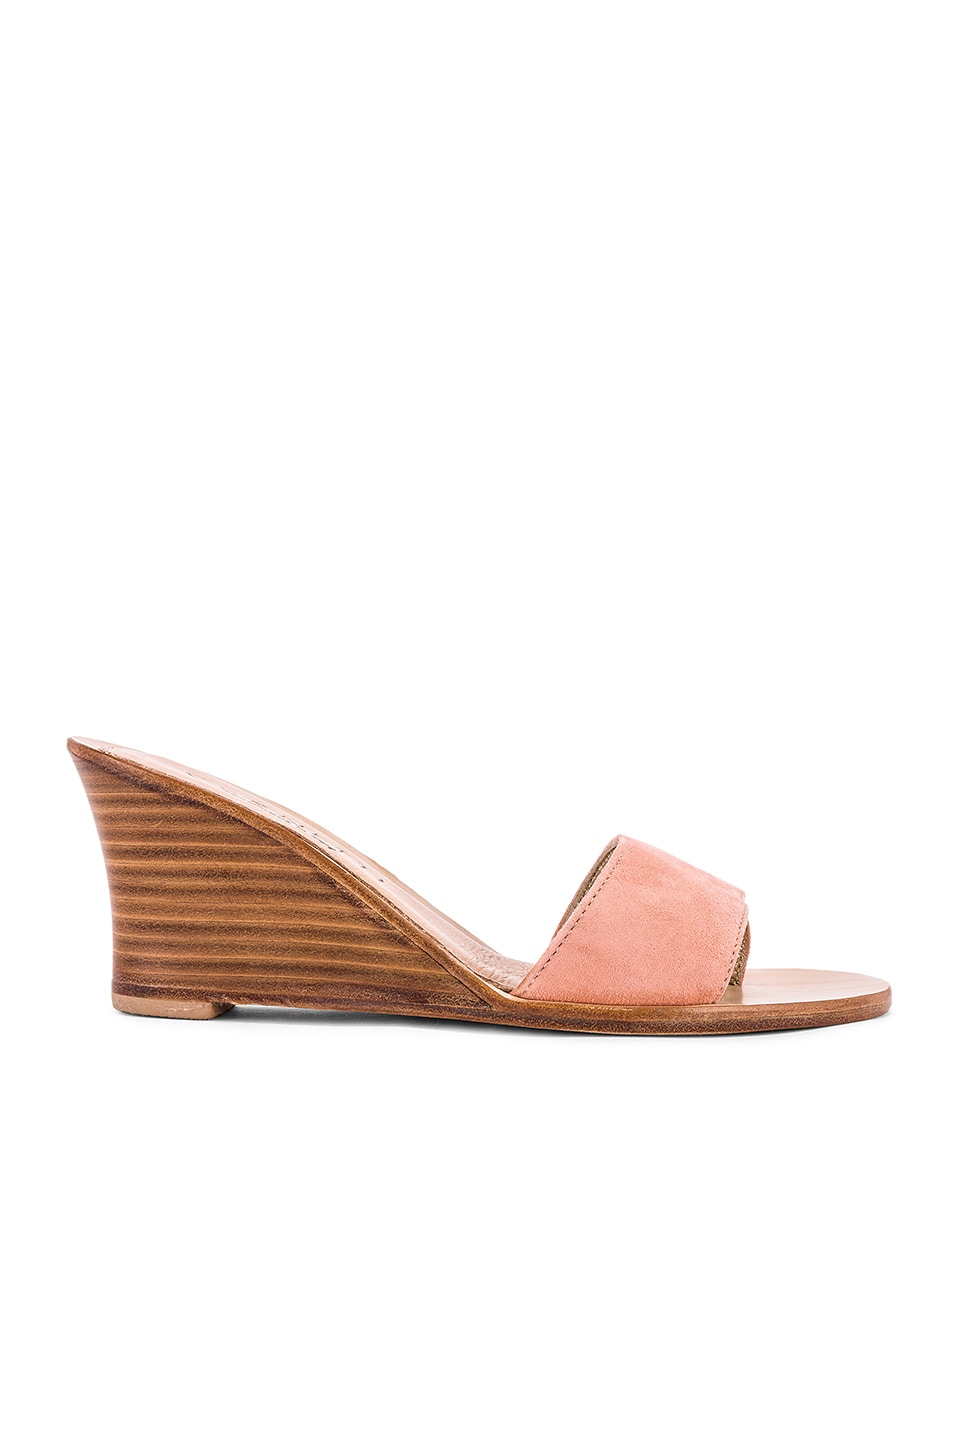 CoRNETTI Cannucce Wedge in Peach